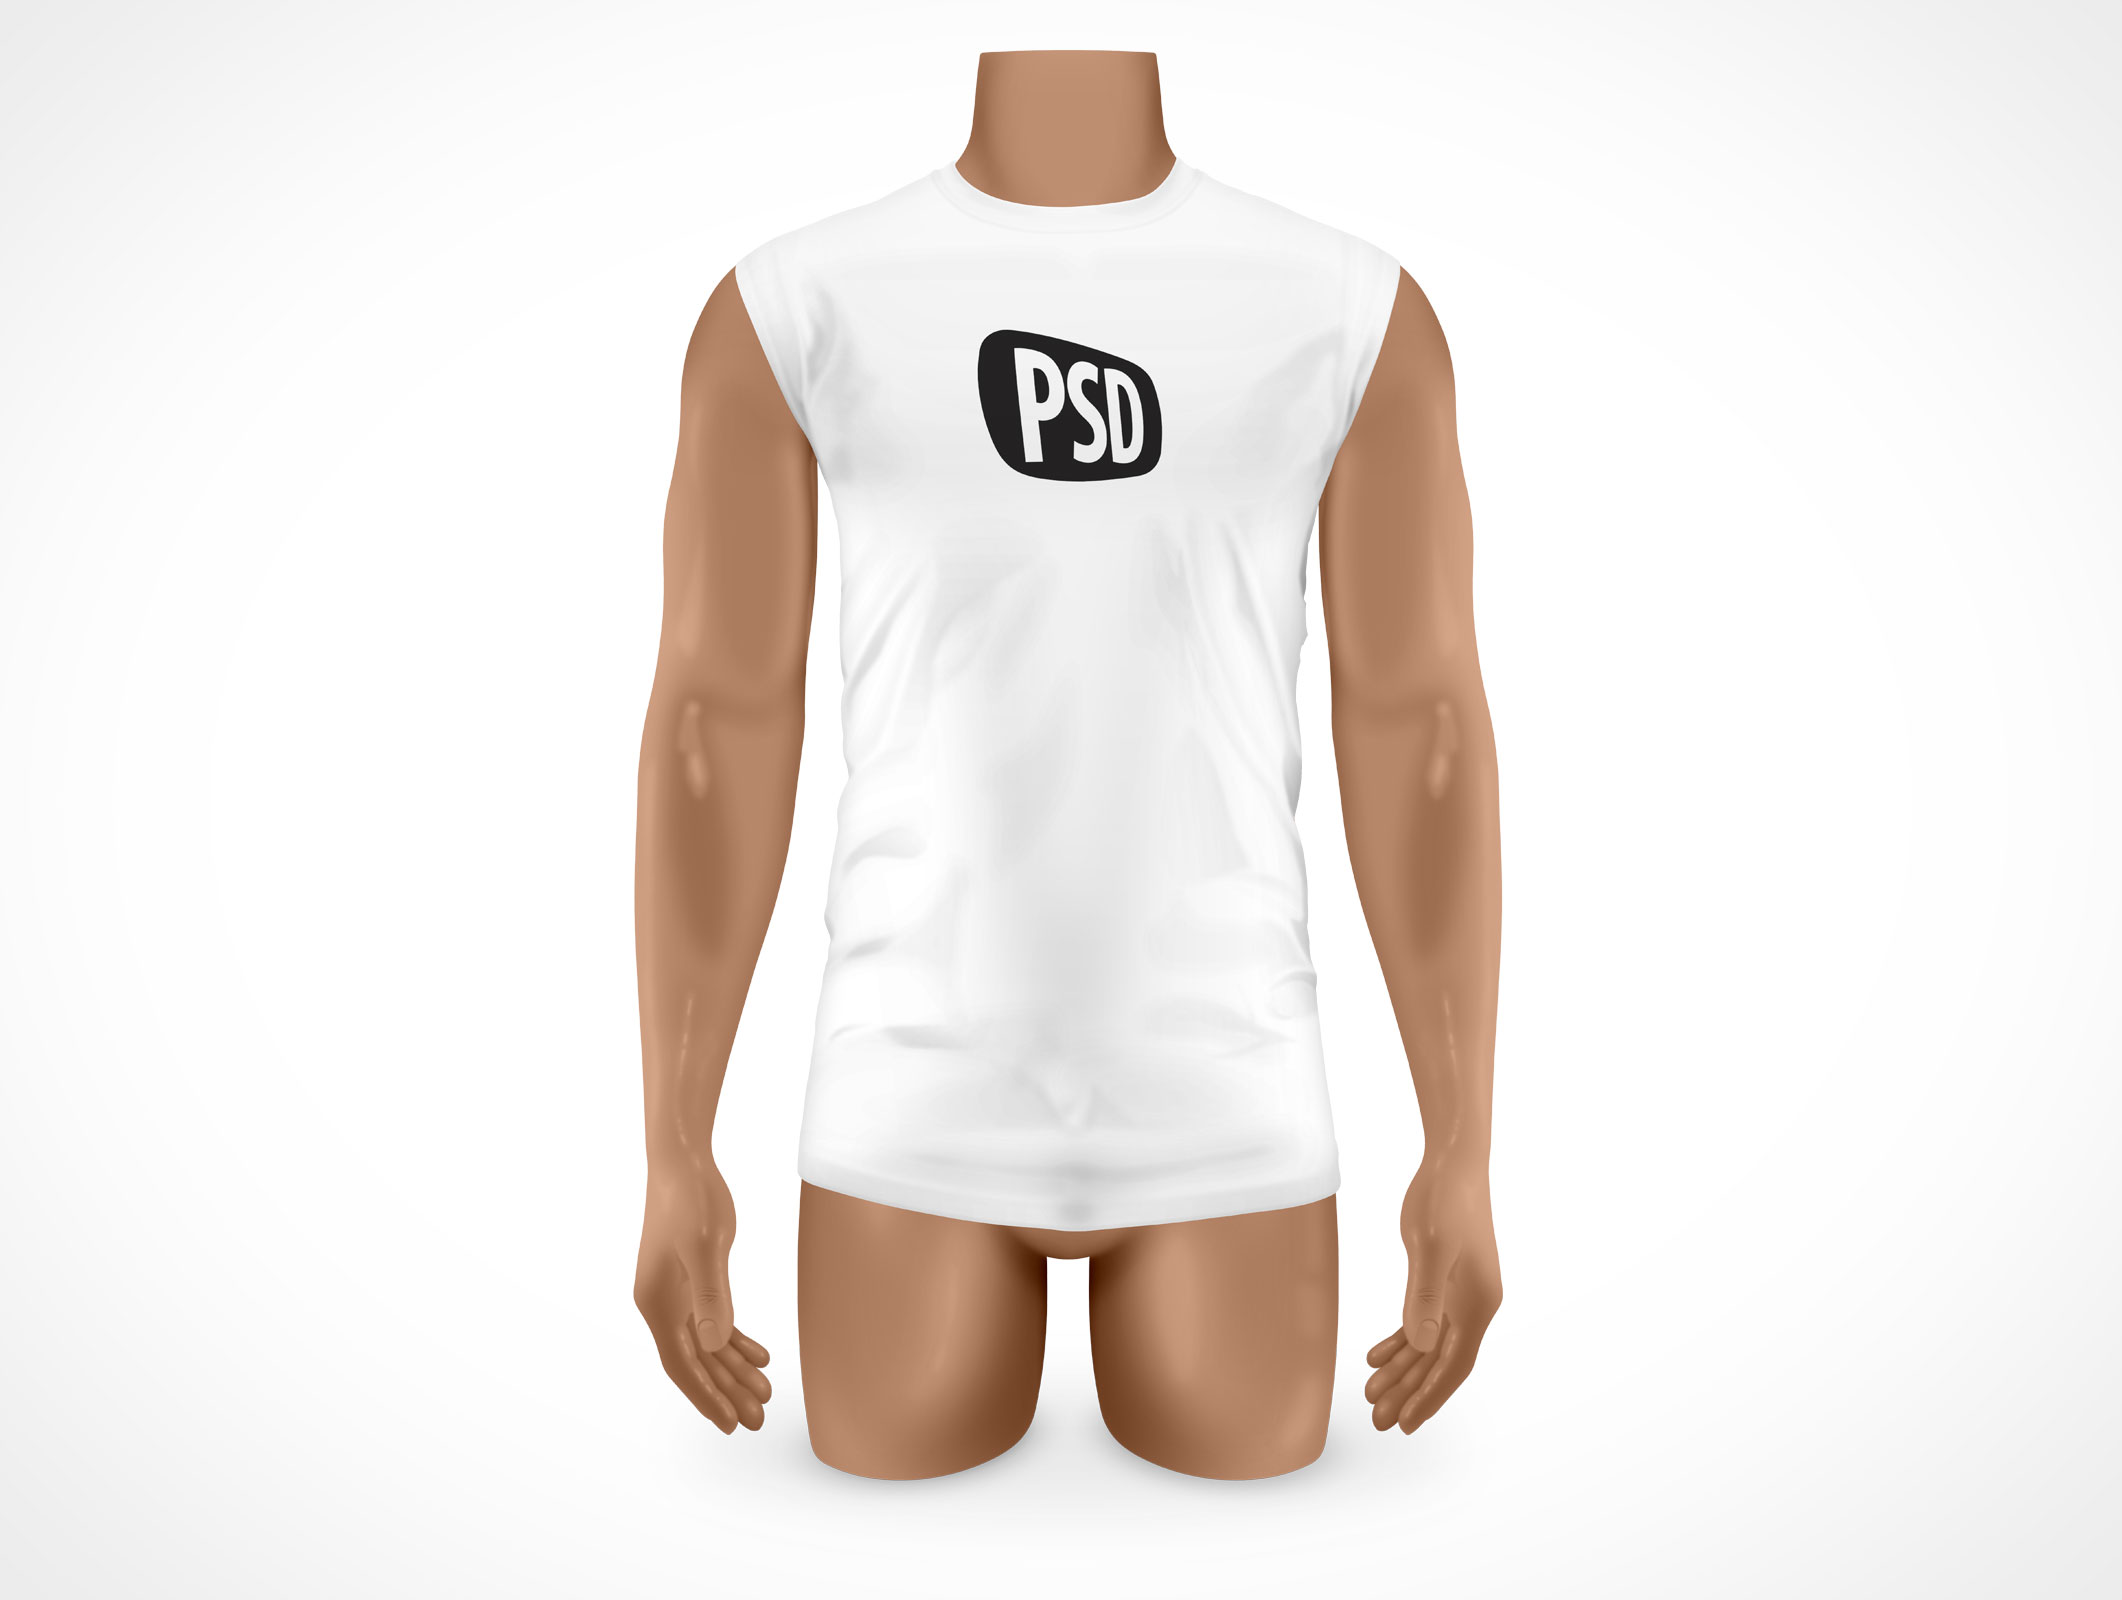 T shirt white mockup - Psd Mock Up T Shirt Mens White Large